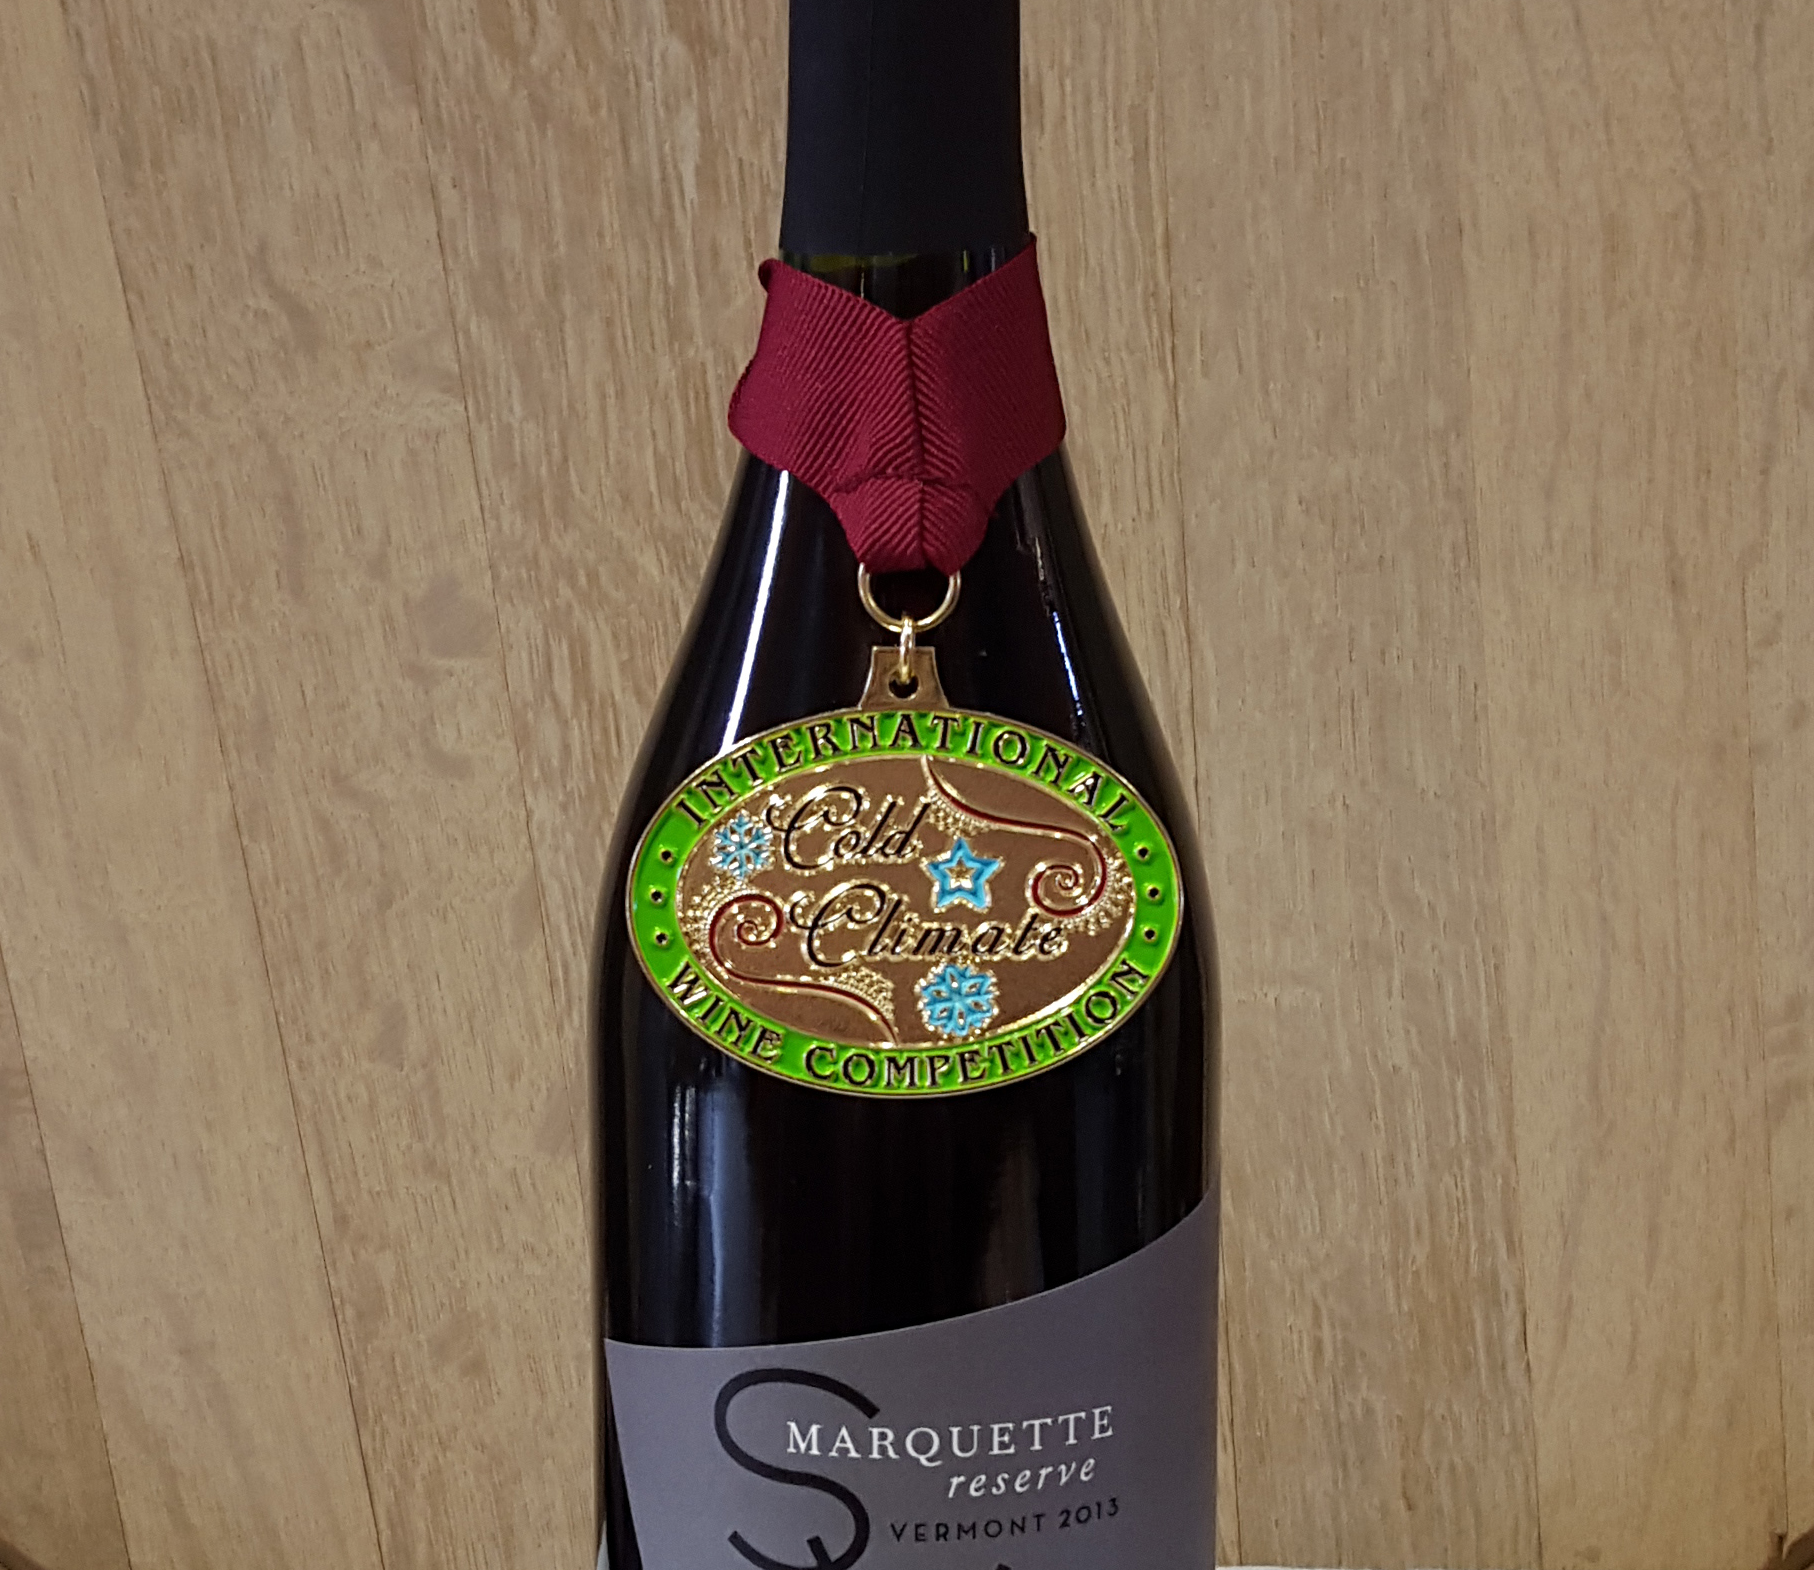 Marquette reserve with medal.jpg